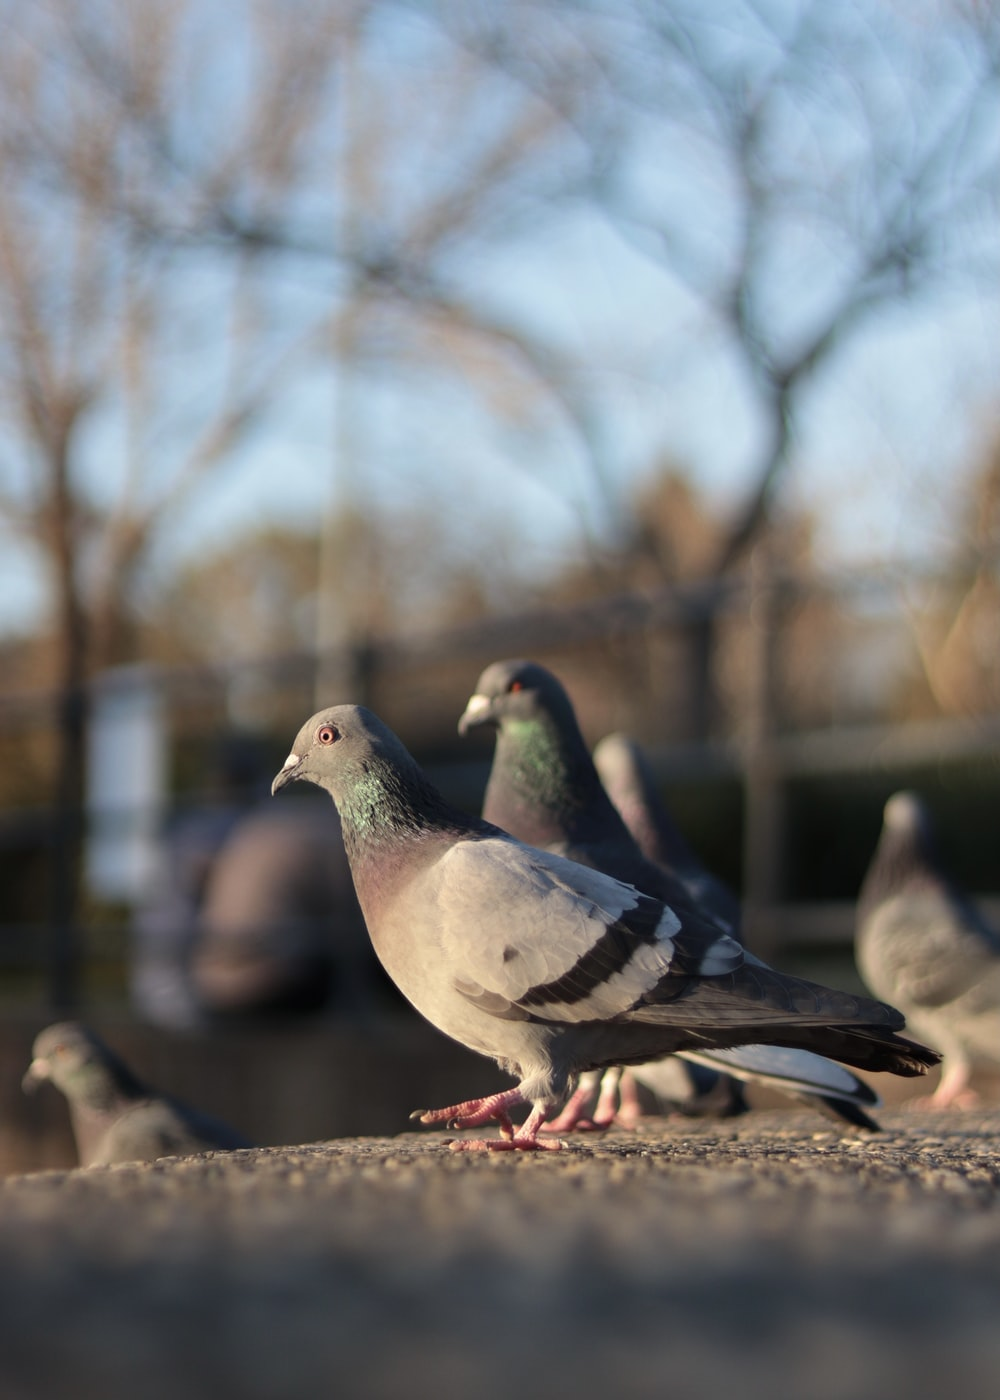 gray and white pigeon on brown wooden fence during daytime